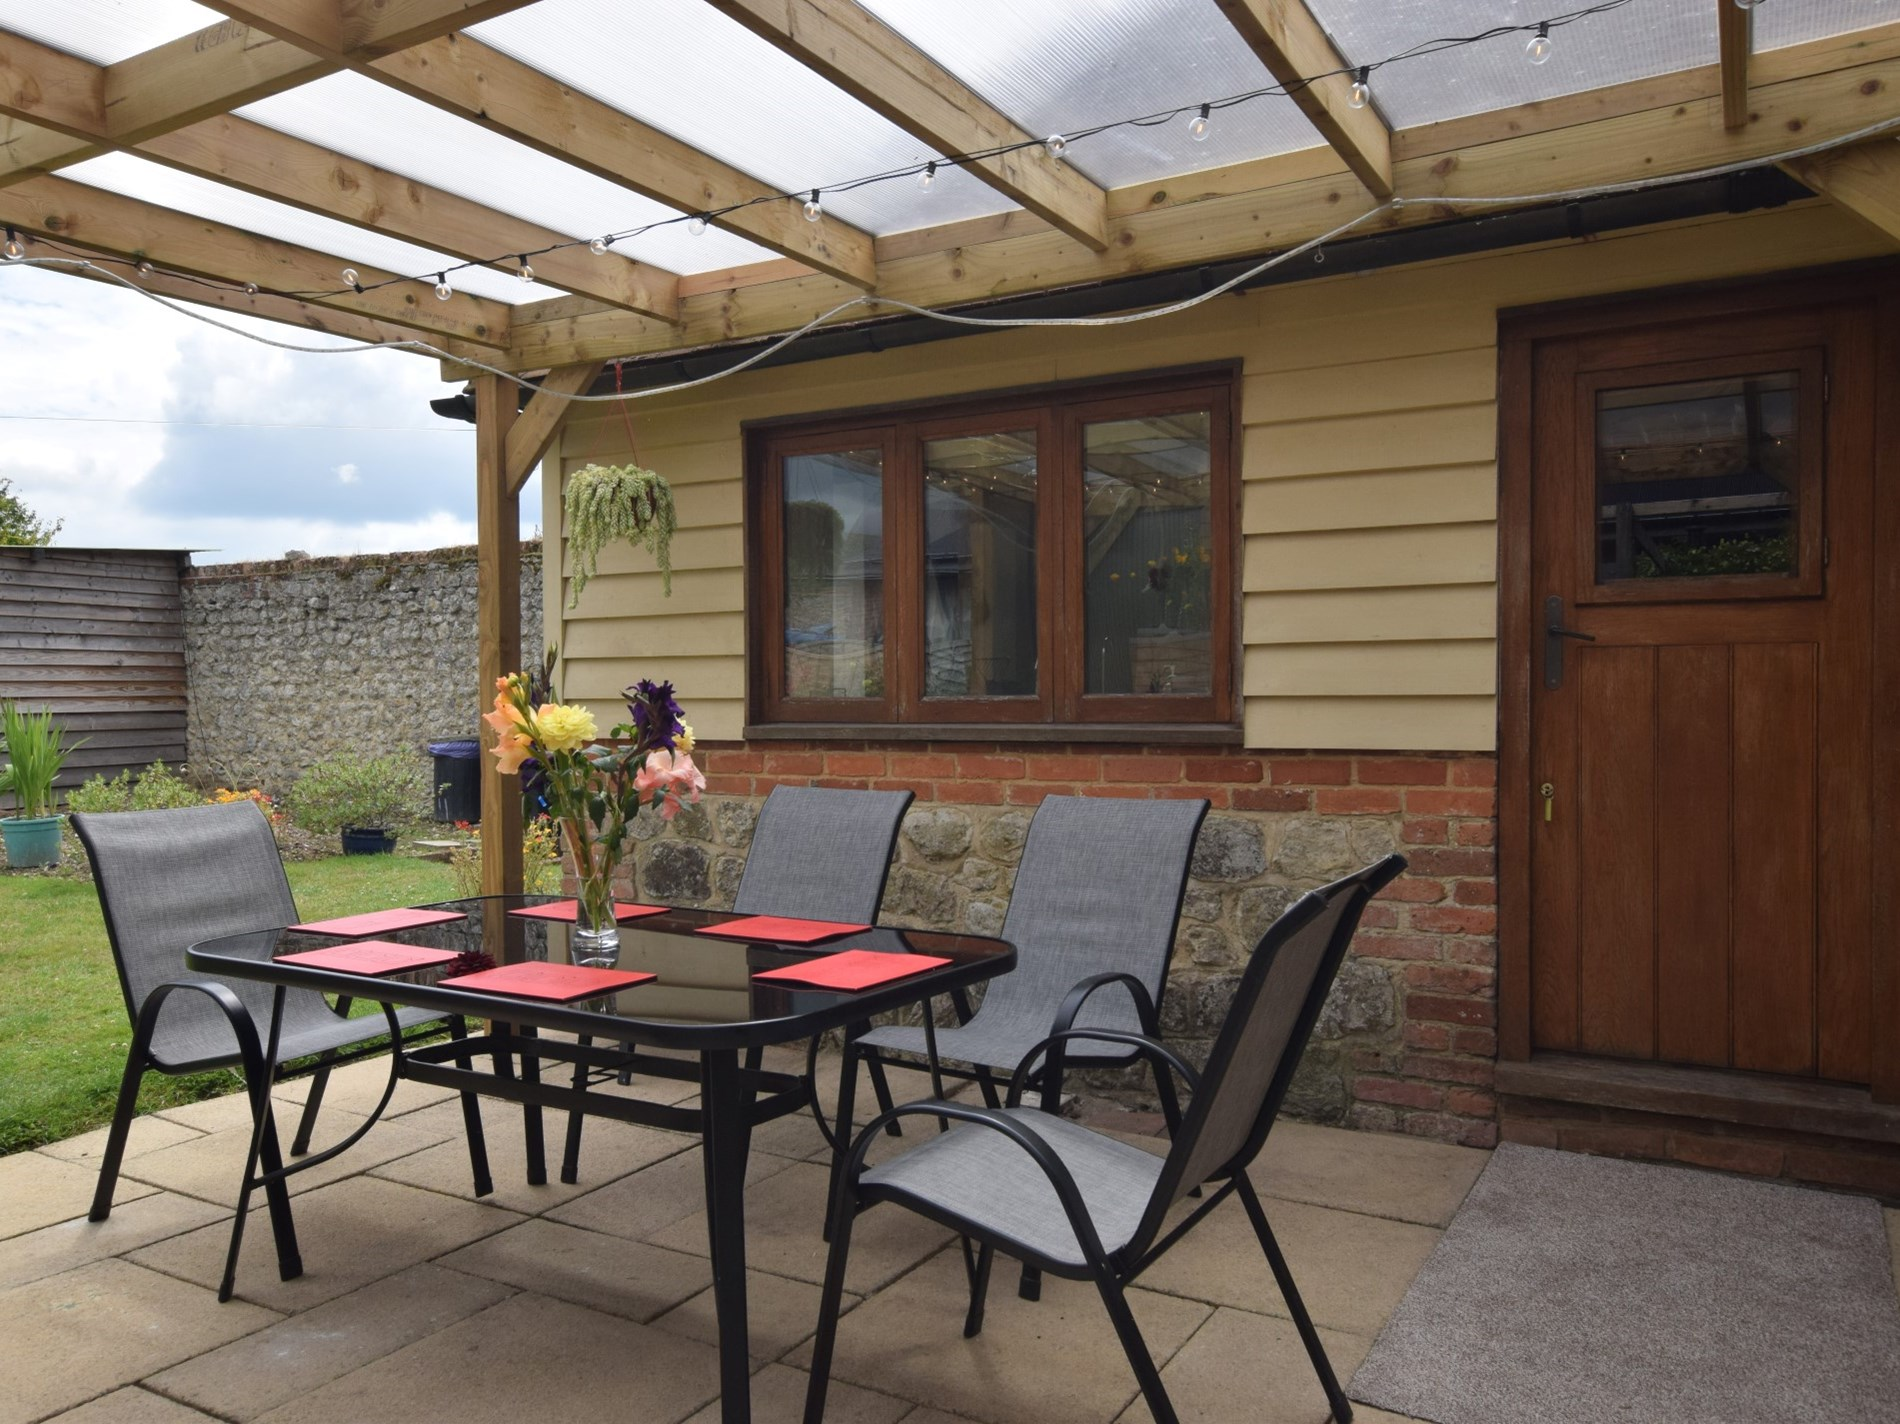 3 Bedroom Cottage in Ashford, South of England